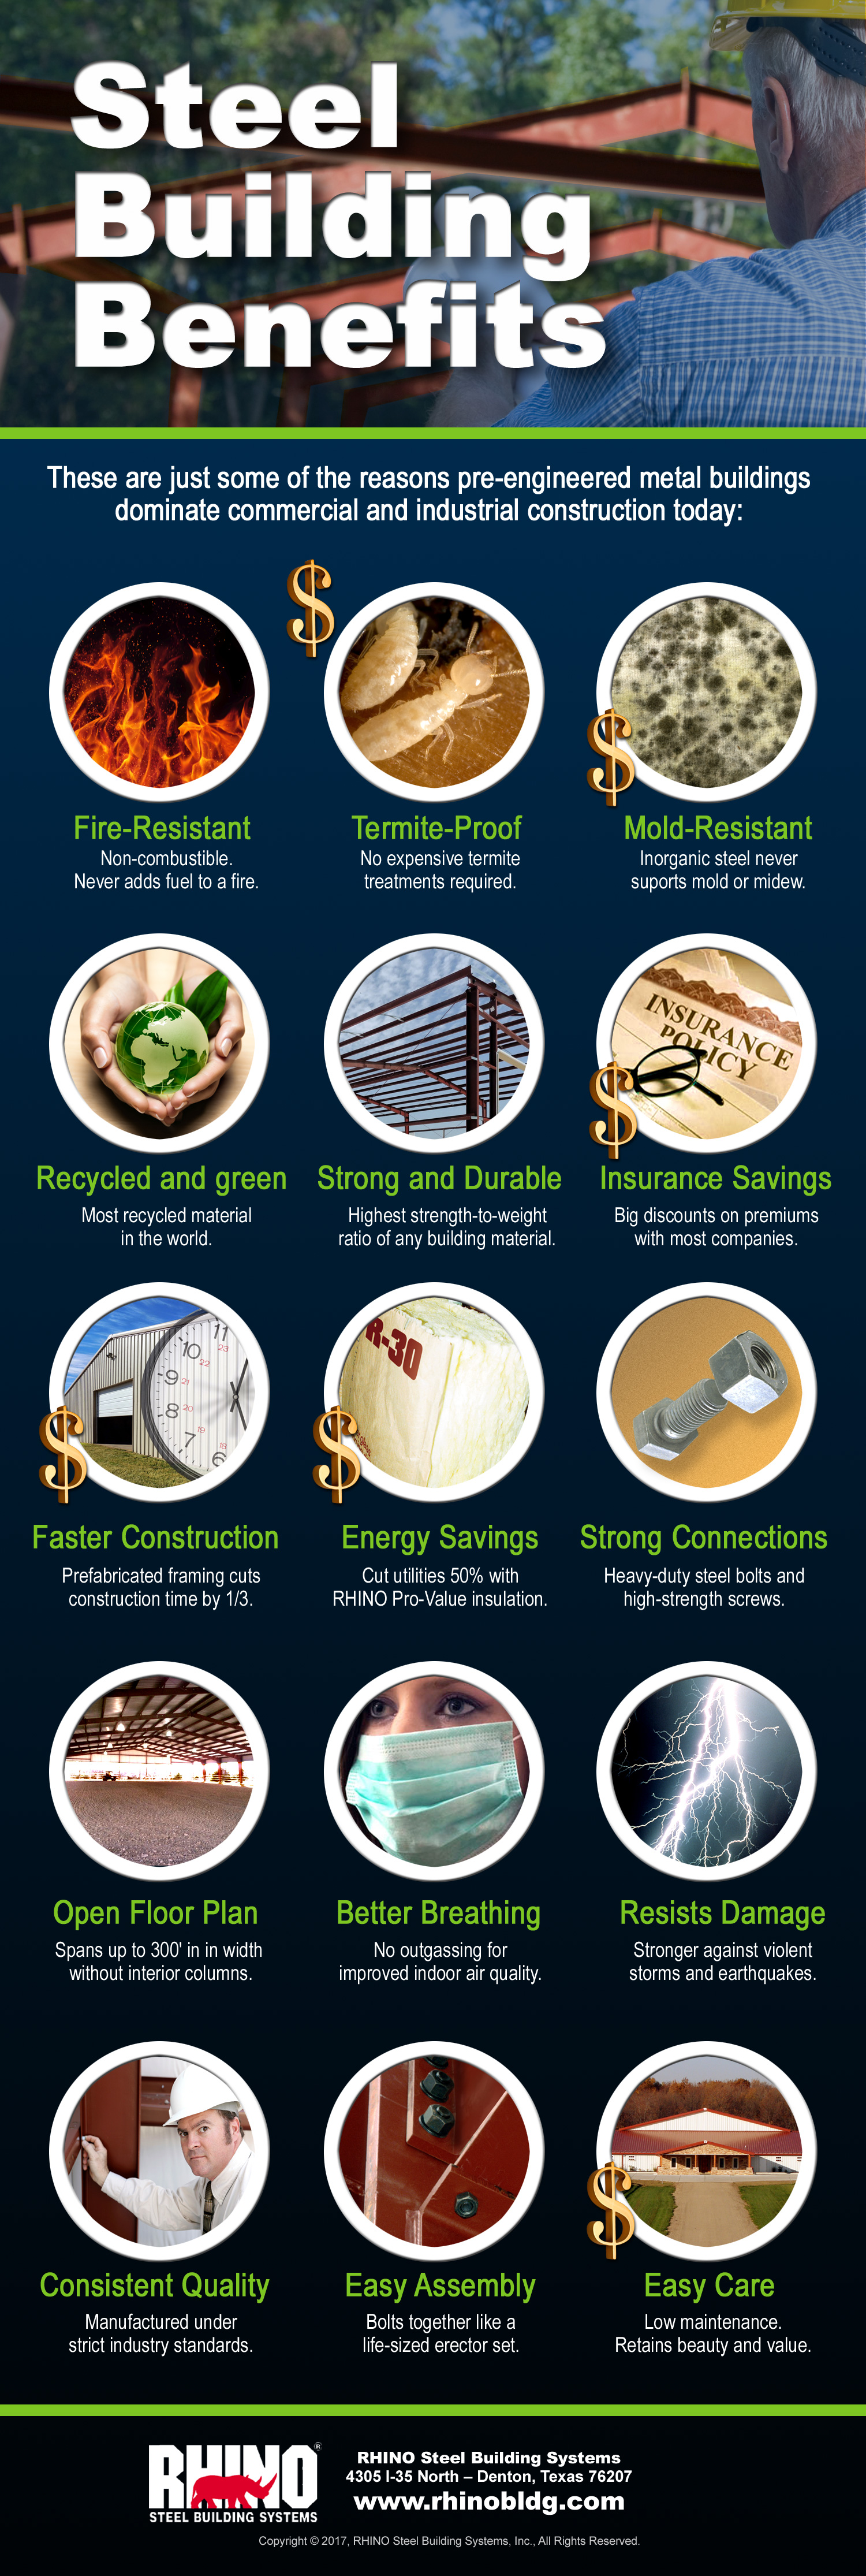 Infographic 15 steel building benefits for steel warehouses and distribution centers.